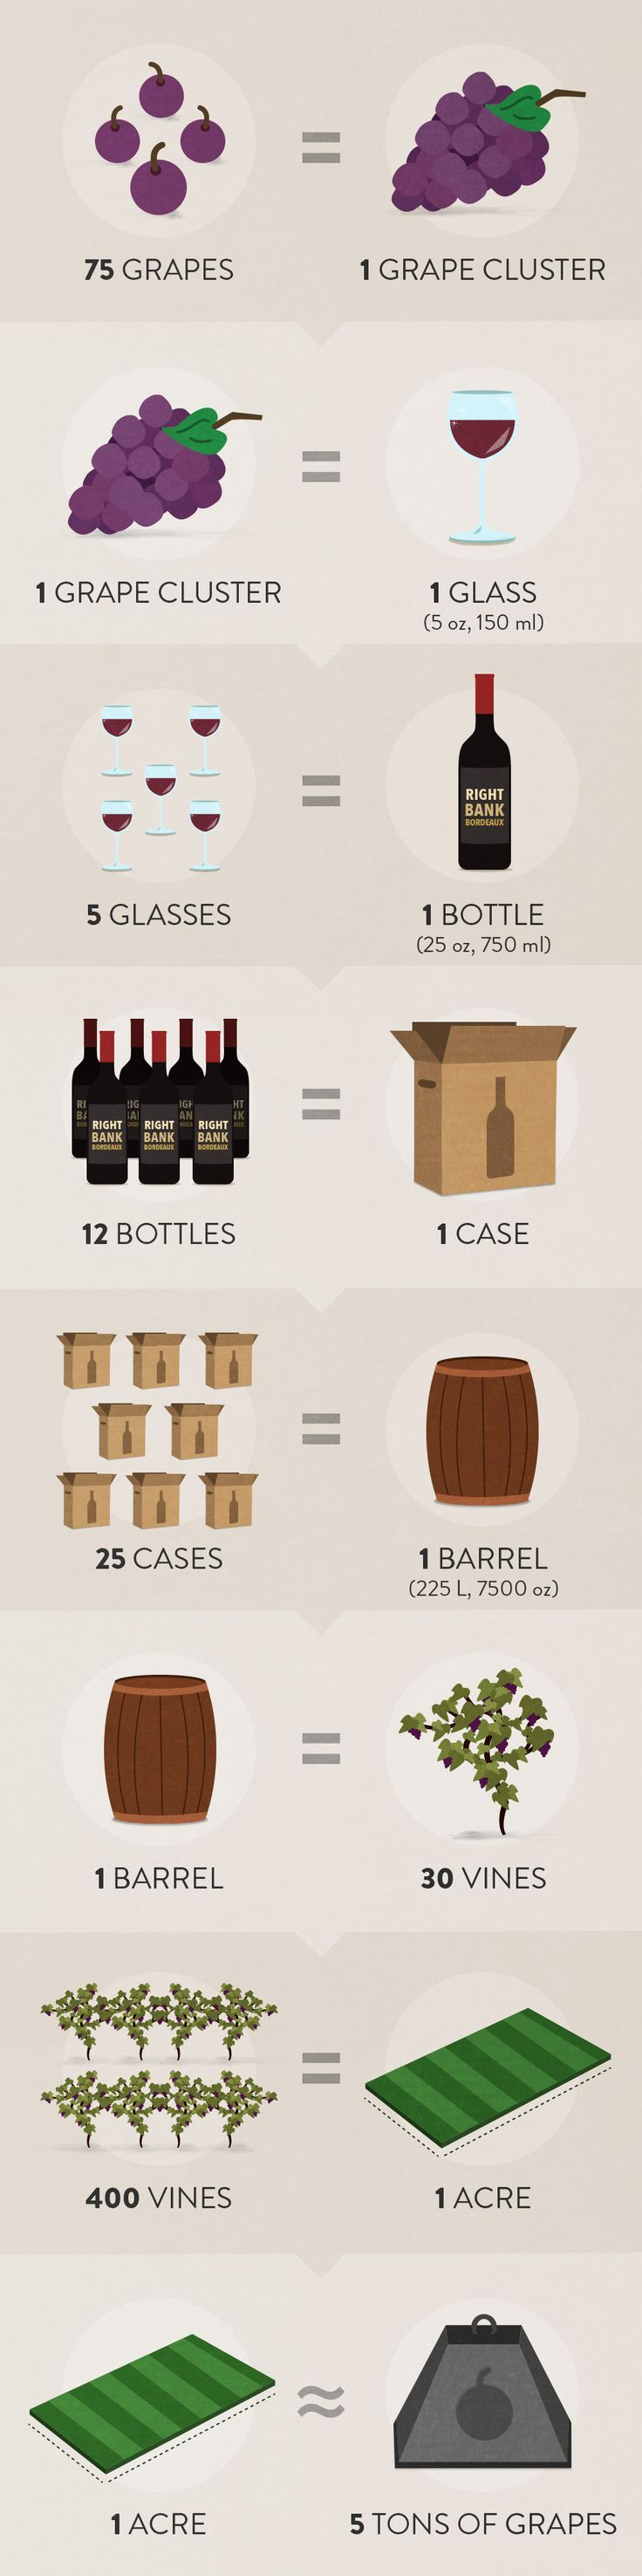 Wine Math: How Many Grapes in a Glass of Wine? | Vivino